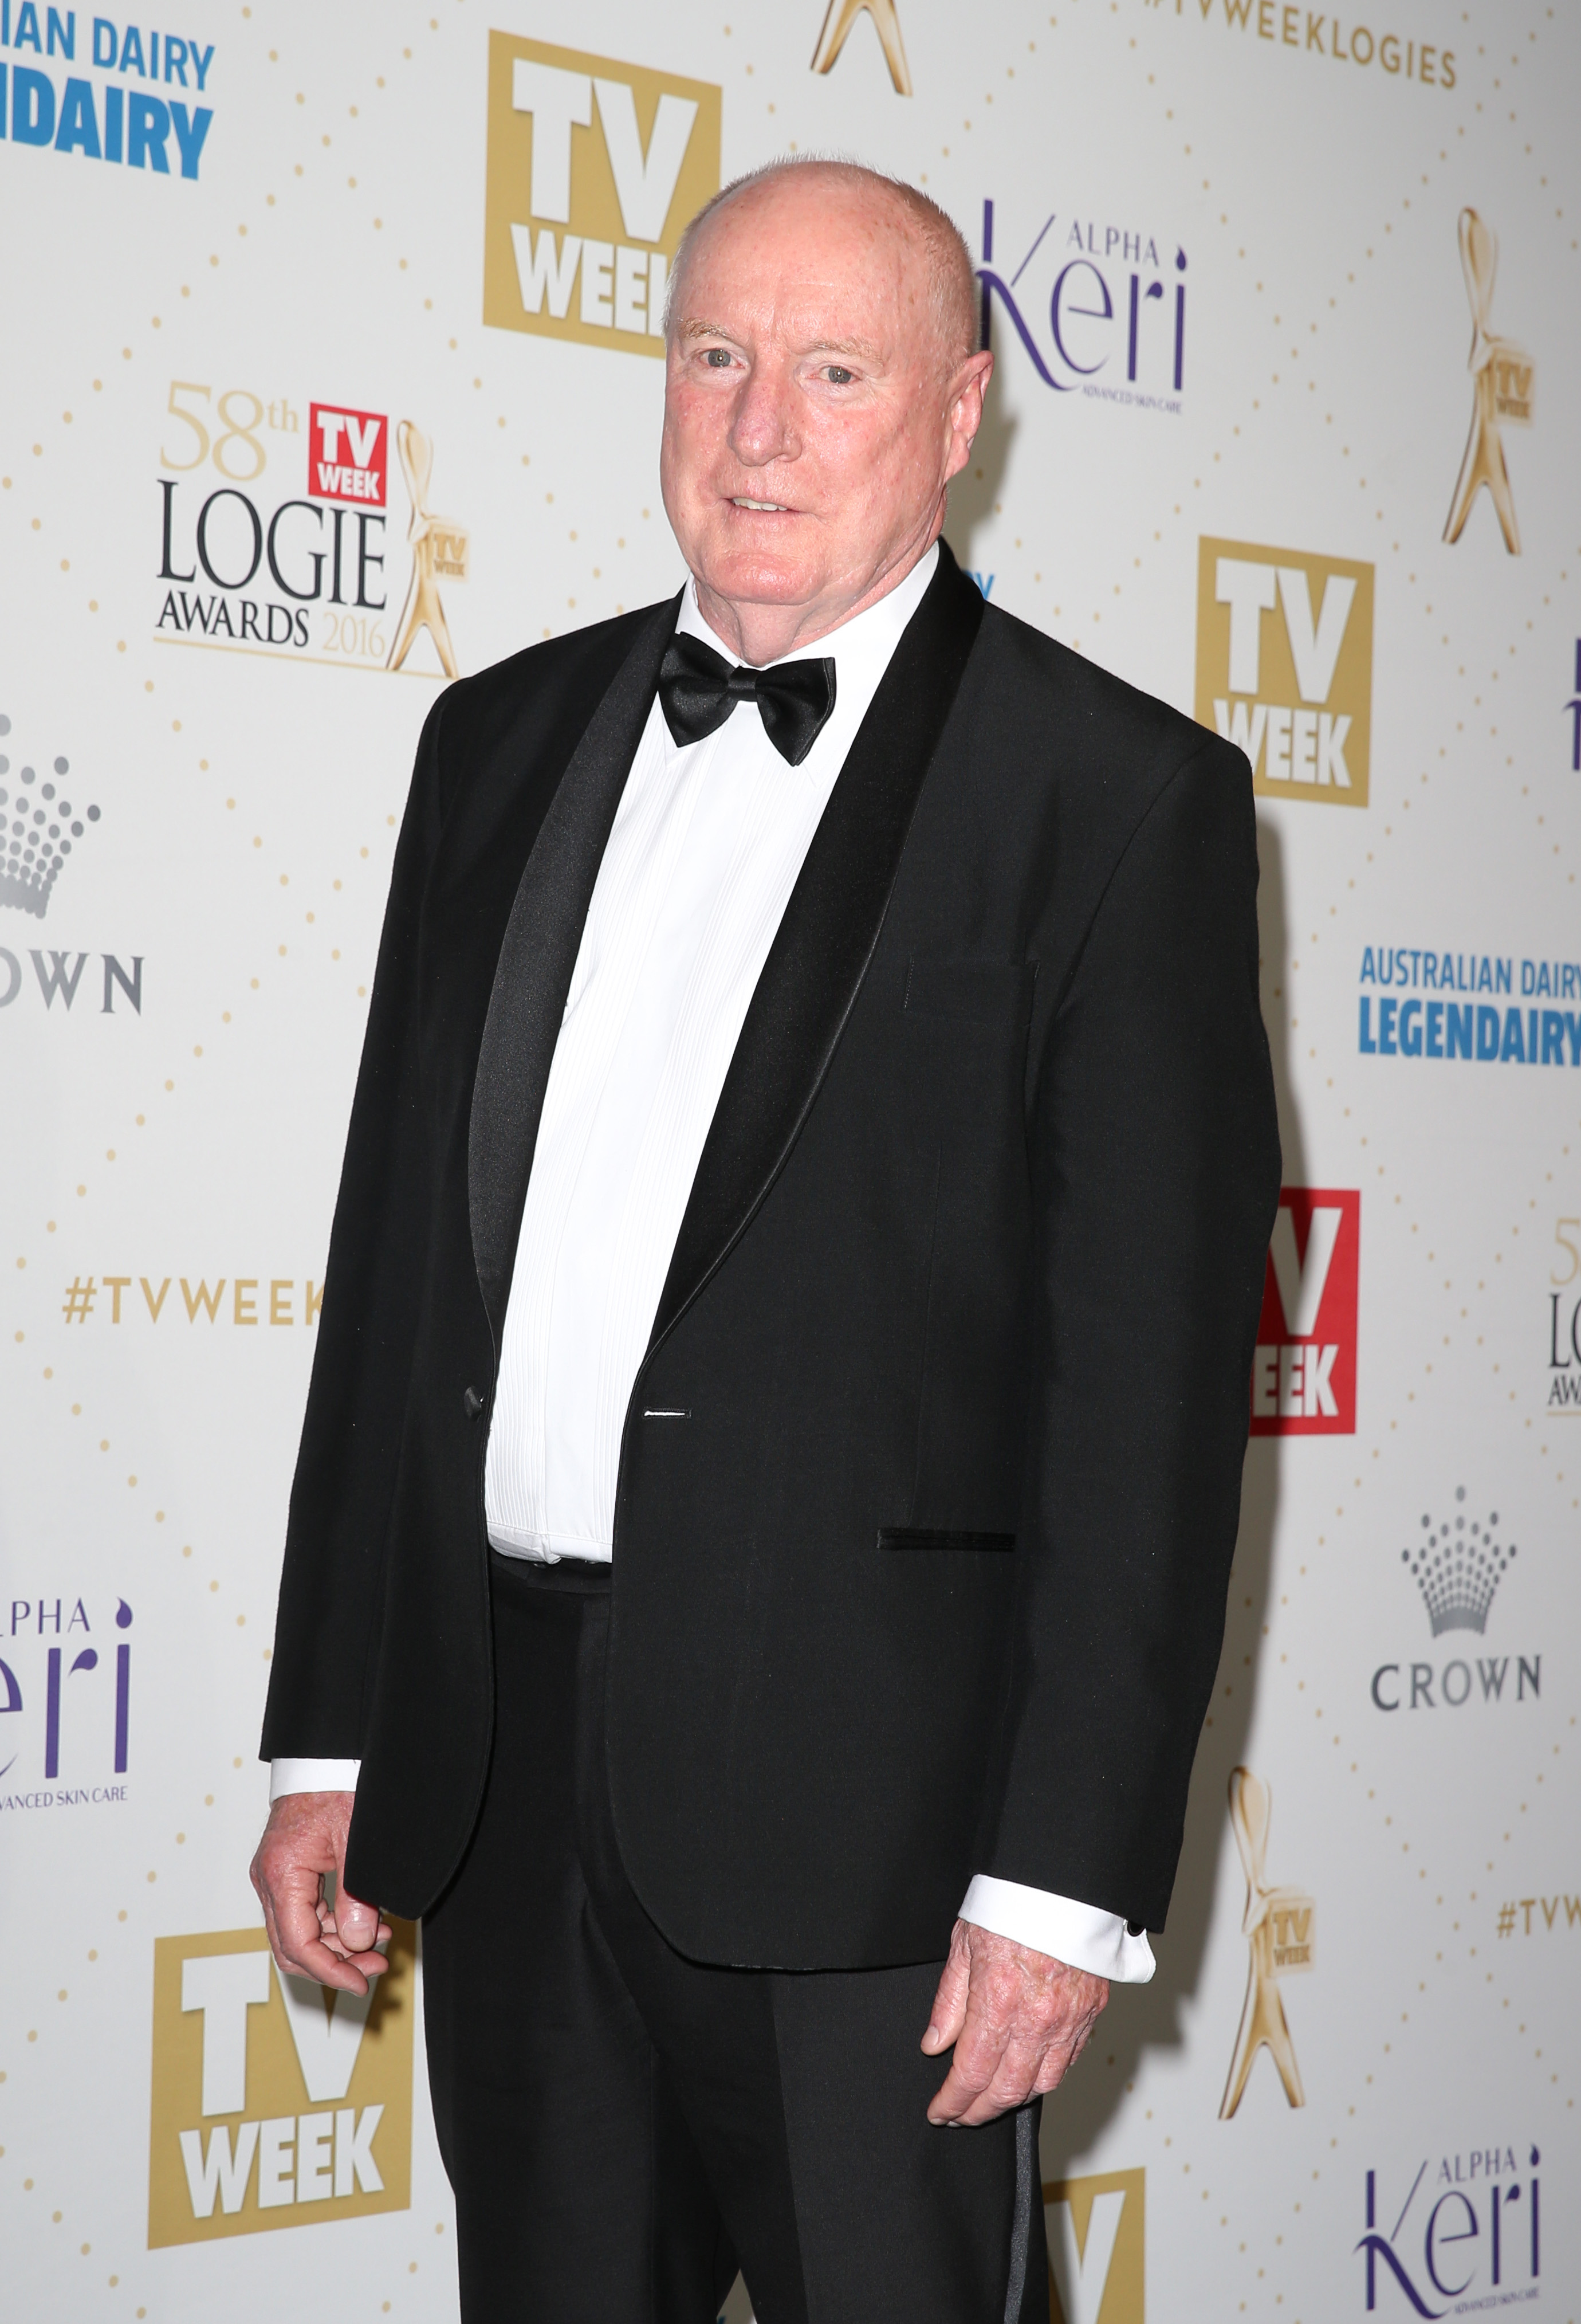 Celebrities walk the red carpet as they attend the 2016 Logie Awards held at Crown Casino in Melbourne Pictured: Ray Meagher,Colin Fassnidge Sonia Kruger Sandra Sully Natarsha Belling Ray Meagher Waleed Aly Susan Carland Olympia Valance Gary Mehigan Matt Preston George Columbaris Carla Bonner Stefan Dennis Johanna Griggs Danielle Cormack Deanne Jolly Darren And Deanne Jolly Jessica Rowe Ita Buttrose Sarah Harris Emma Freedman Delta Goodrem Delta GoodremDelta Goodrem Conrad Sewell Erin Molan Patrick Brammall Shaynna Blaze Ryan Corr Jesinta Campbell Carrie Bickmore Ref: SPL1277882 080516 NON-EXCLUSIVE Picture by: SplashNews.com Splash News and Pictures Los Angeles: 310-821-2666 New York: 212-619-2666 London: +44 (0)20 7644 7656 Berlin: +49 175 3764 166 photodesk@splashnews.com World Rights